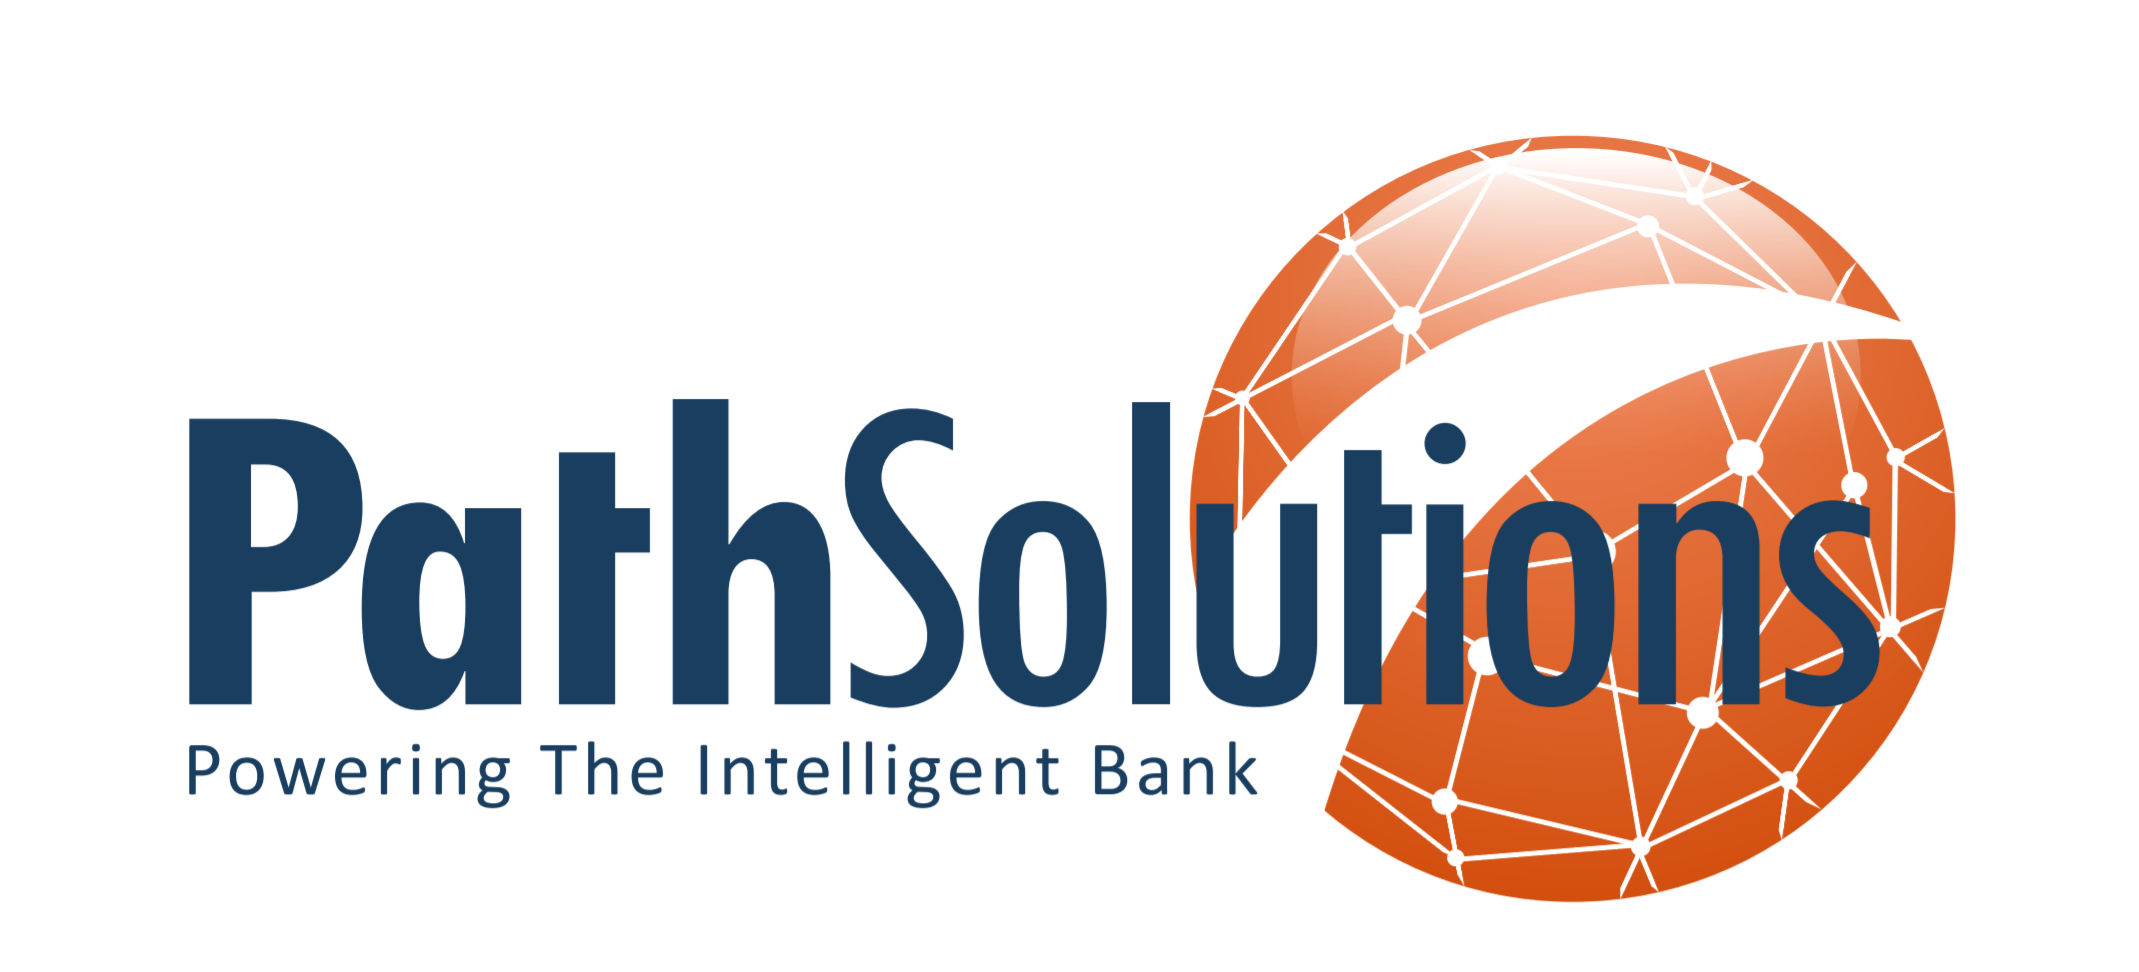 Path Solutions Signs Up for Crédit du Maroc for Implemenatio of a New Core Banking System